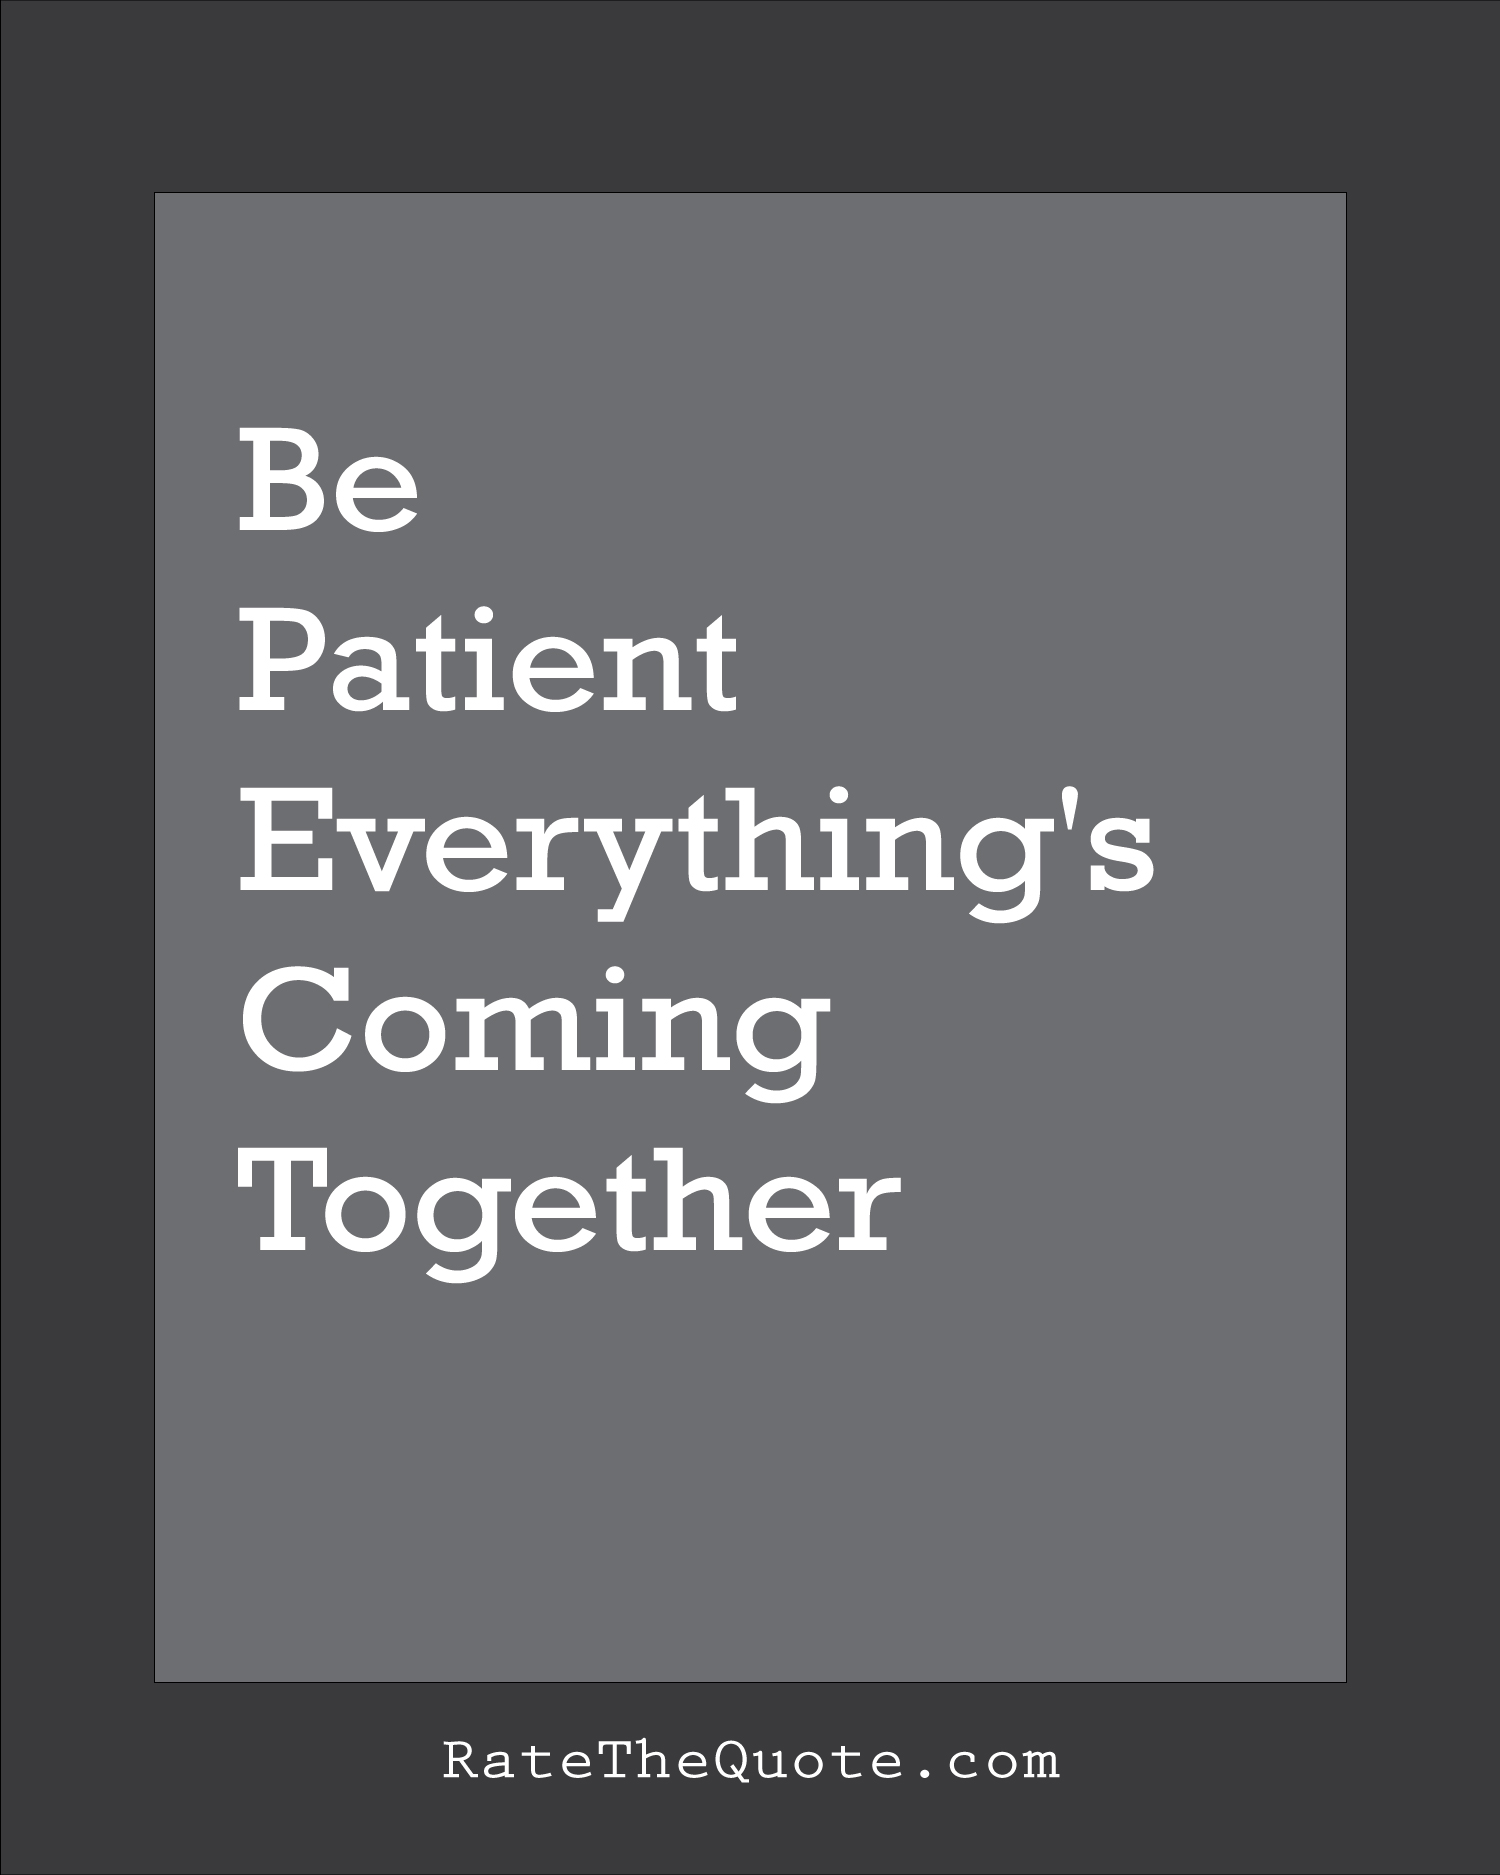 Quote Be patient everything's coming together